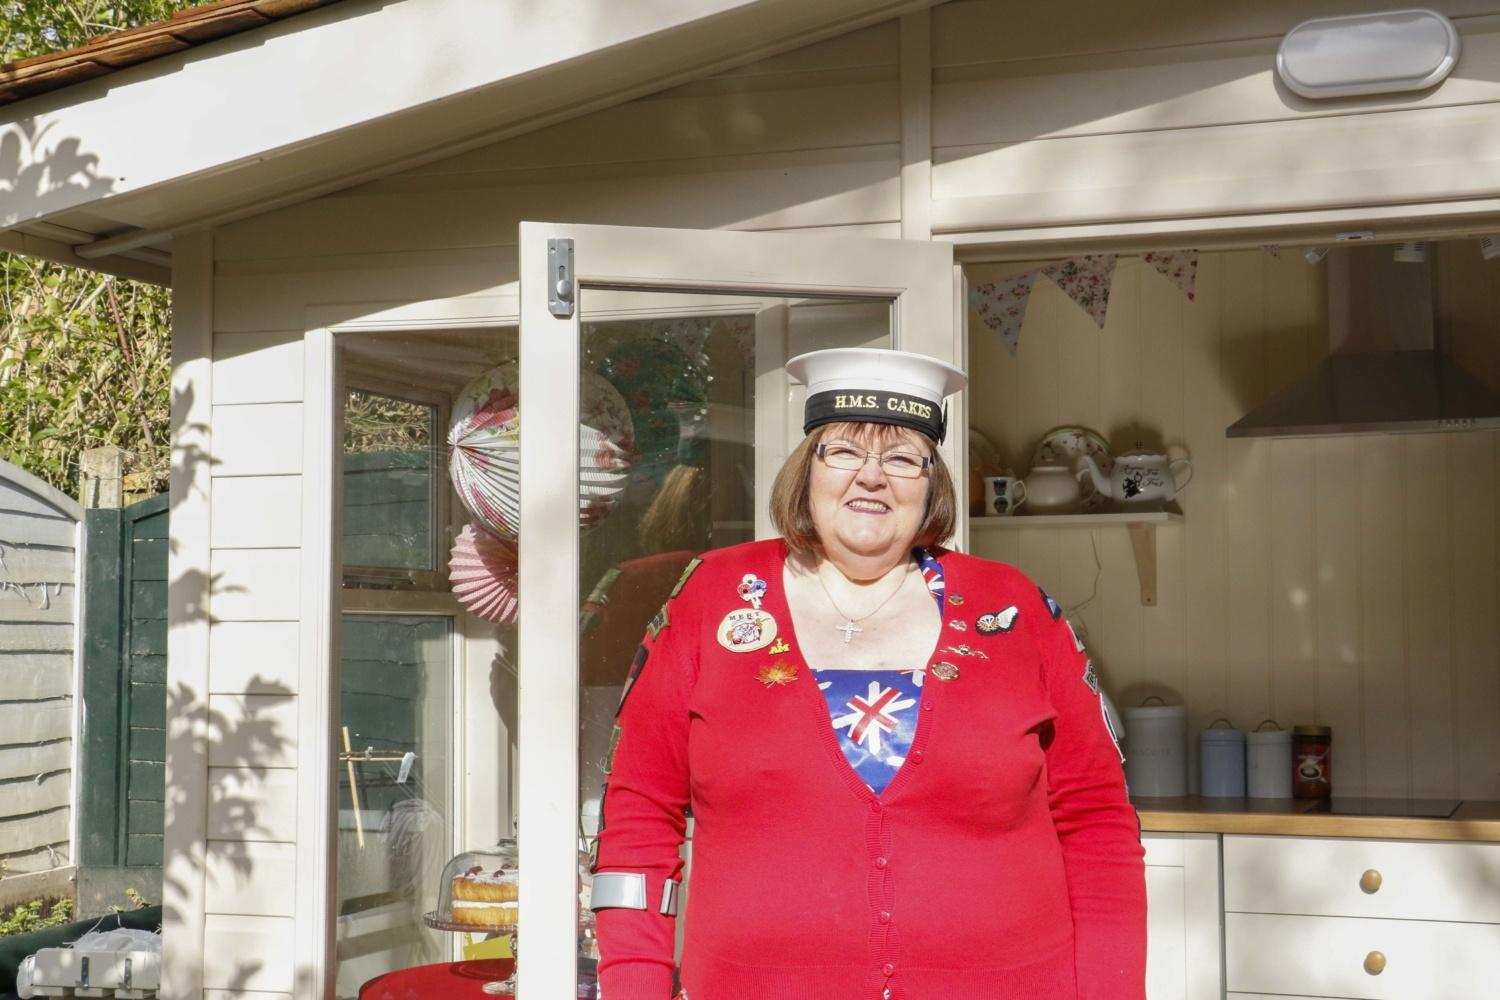 ITV's Love Your Garden visited Kath Ryan to give her the garden makeover of her dreams! Kath is the founder of Cakes4Casulaties and has been baking sweet treats for injured service personnel for over a decade. She now has a dedicated Garden Studio donated by Malvern Garden Buildings with a full kitchen to bake cakes and teach baking to her ex-service armed forces friends.